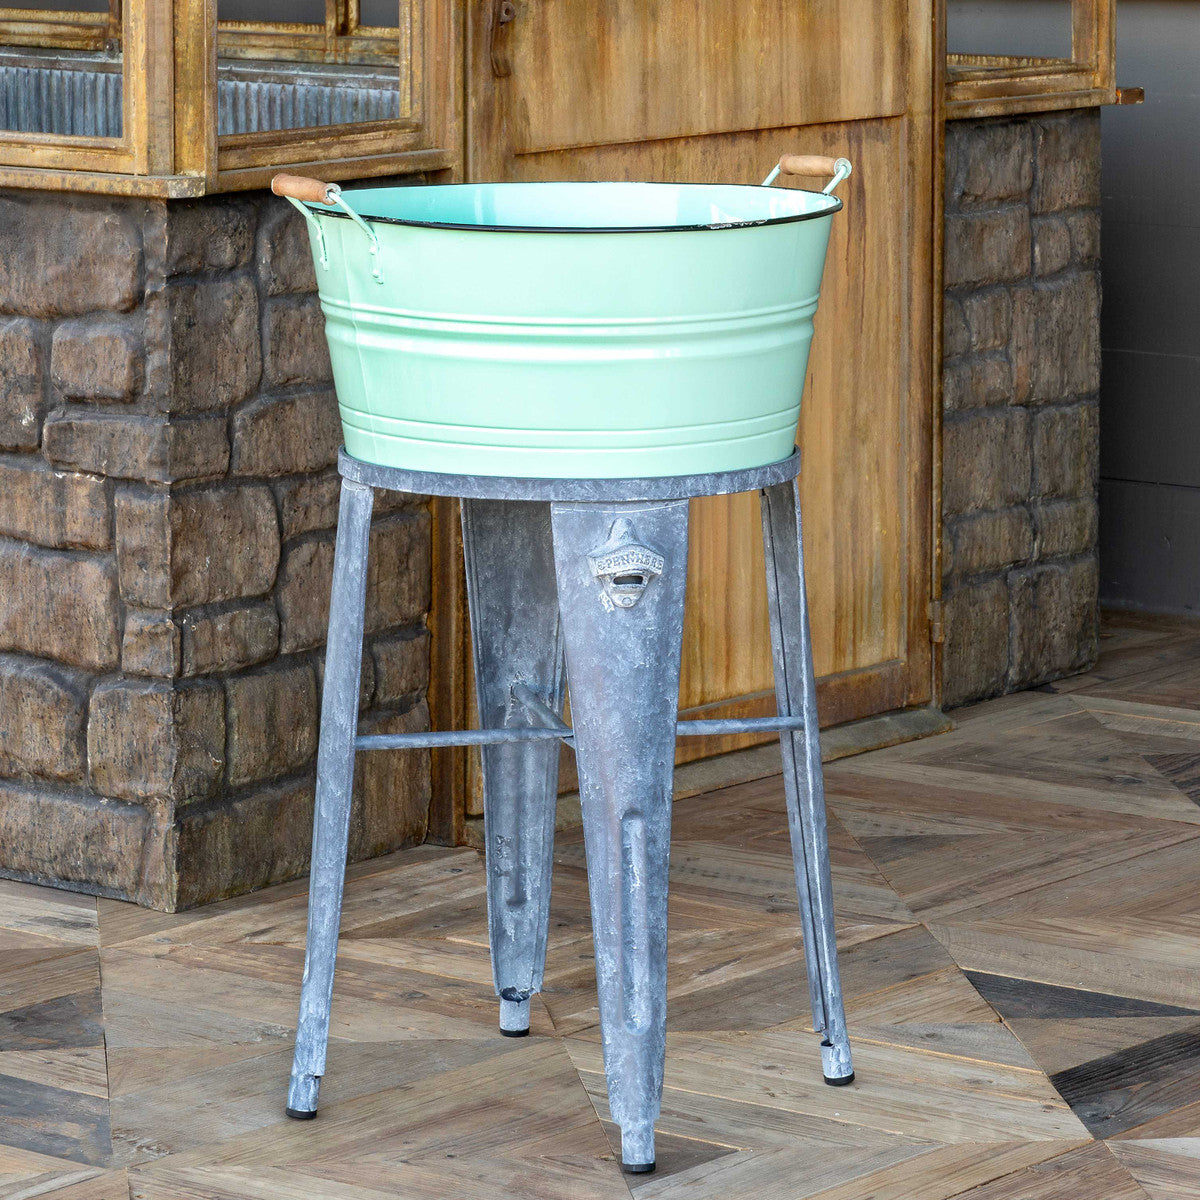 Lovecup Vintage Farmhouse Wash Tub Cooler in Sea Foam Green Color L766